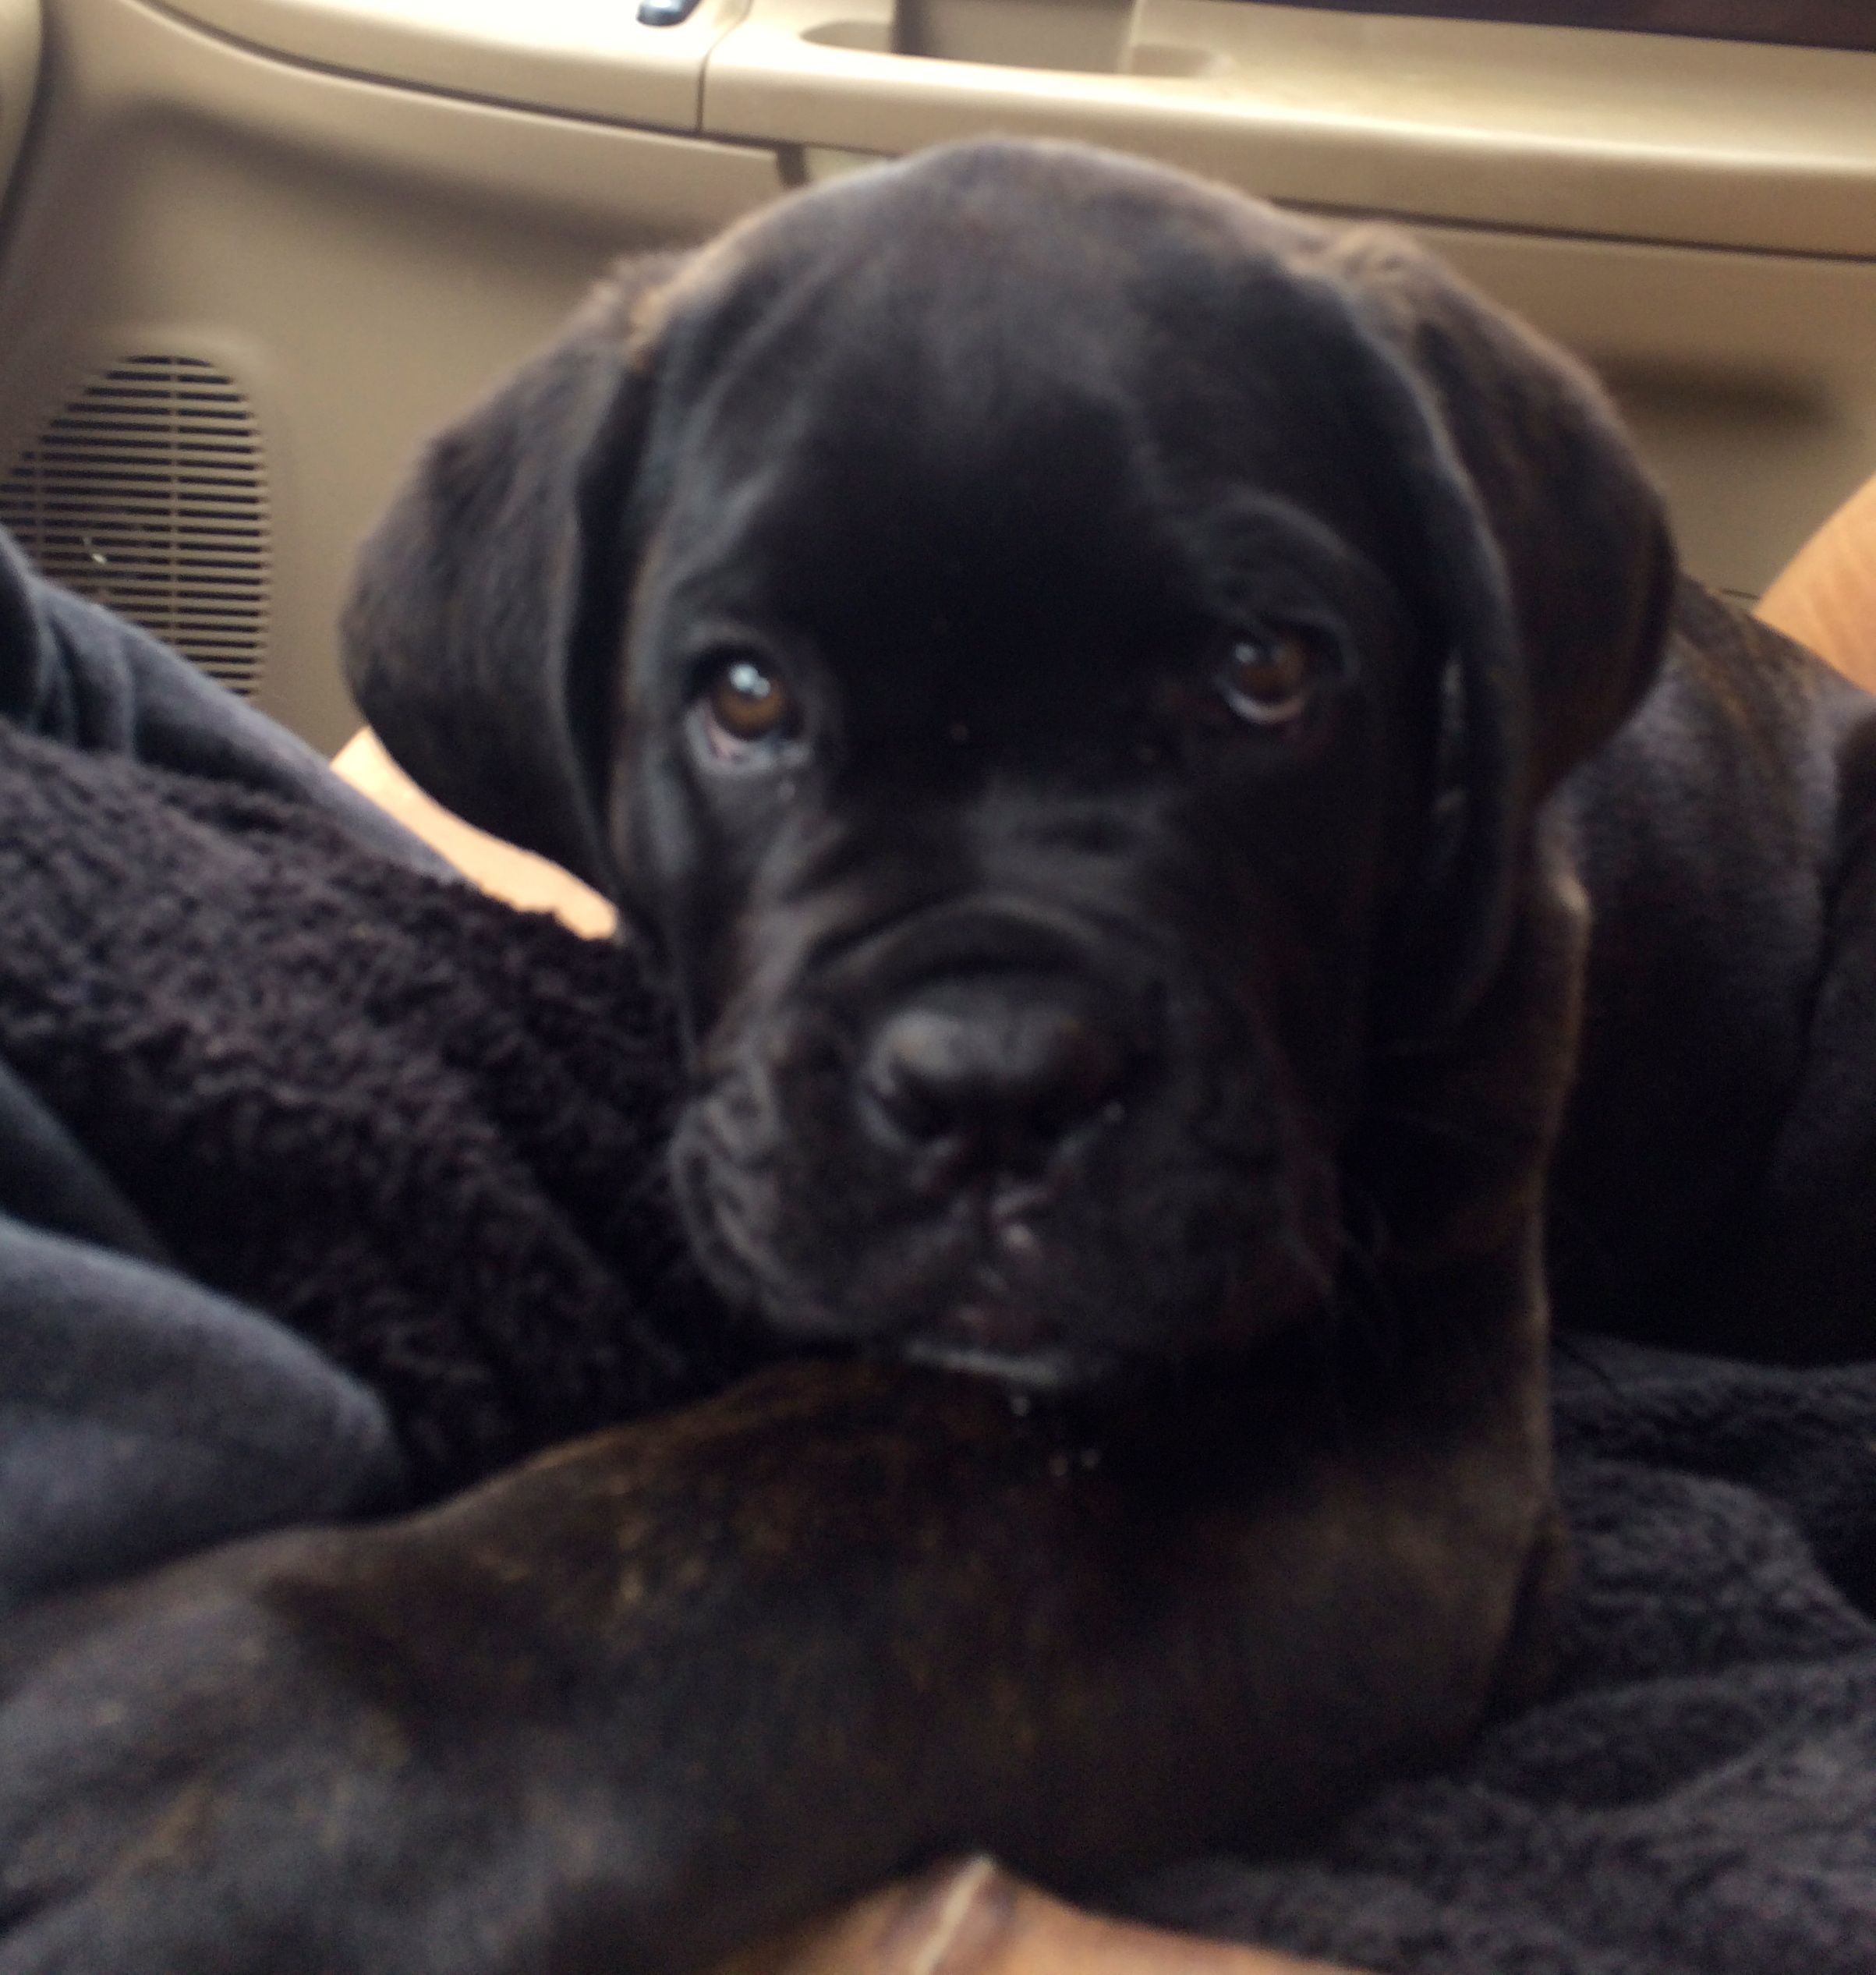 Cane Corso 12 Weeks Old Cane Corso Black Lab Puppies Beast Friends